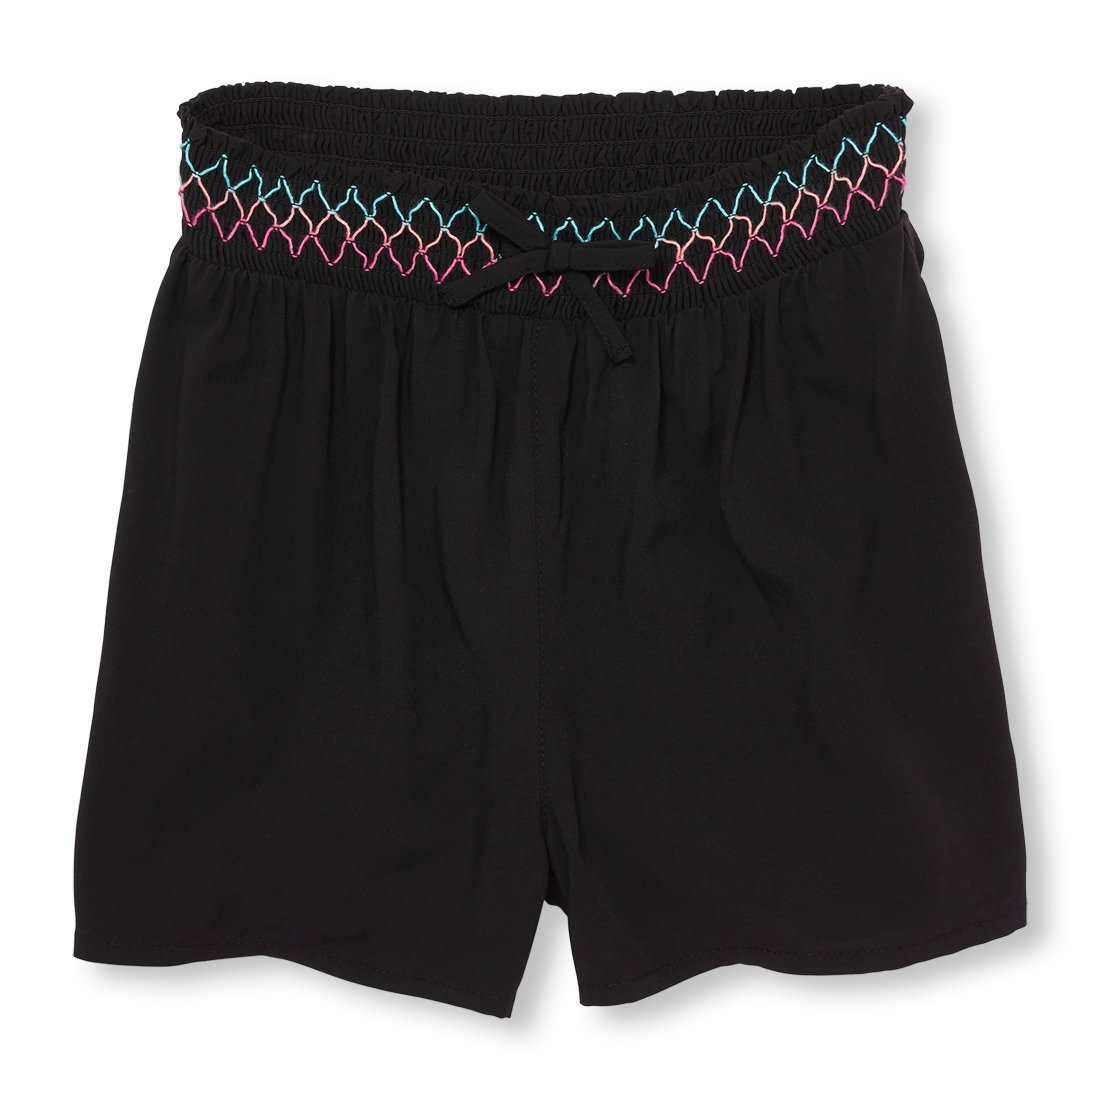 The Children's Place Big Girls' Embroidered Woven Shorts, Black 01150, S (5/6)